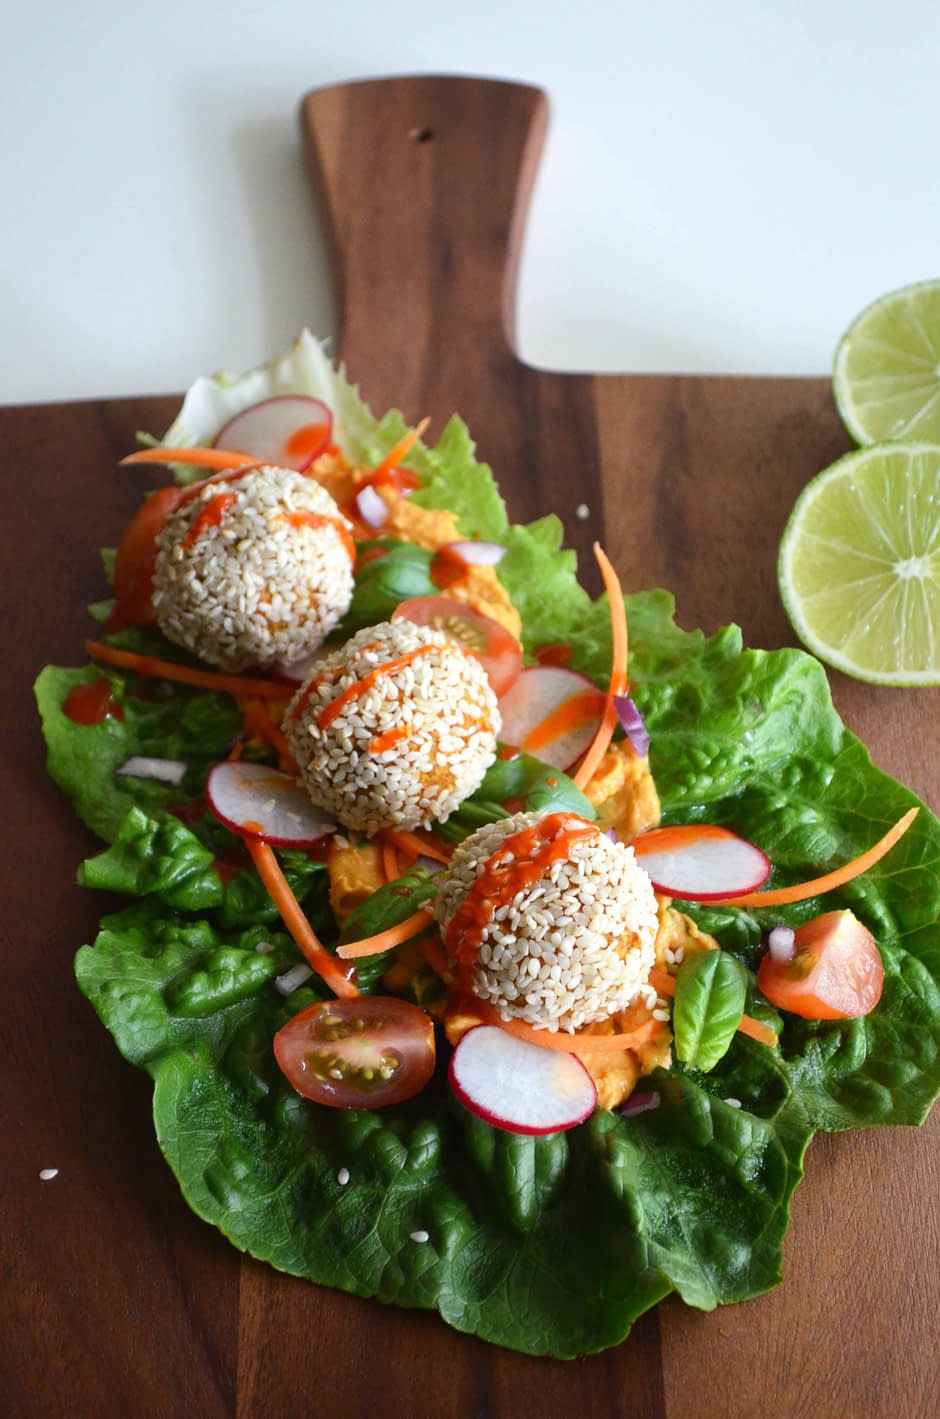 Sweet Potato and Lemon Baked Falafel. Photo and recipe by That Healthy Kitchen